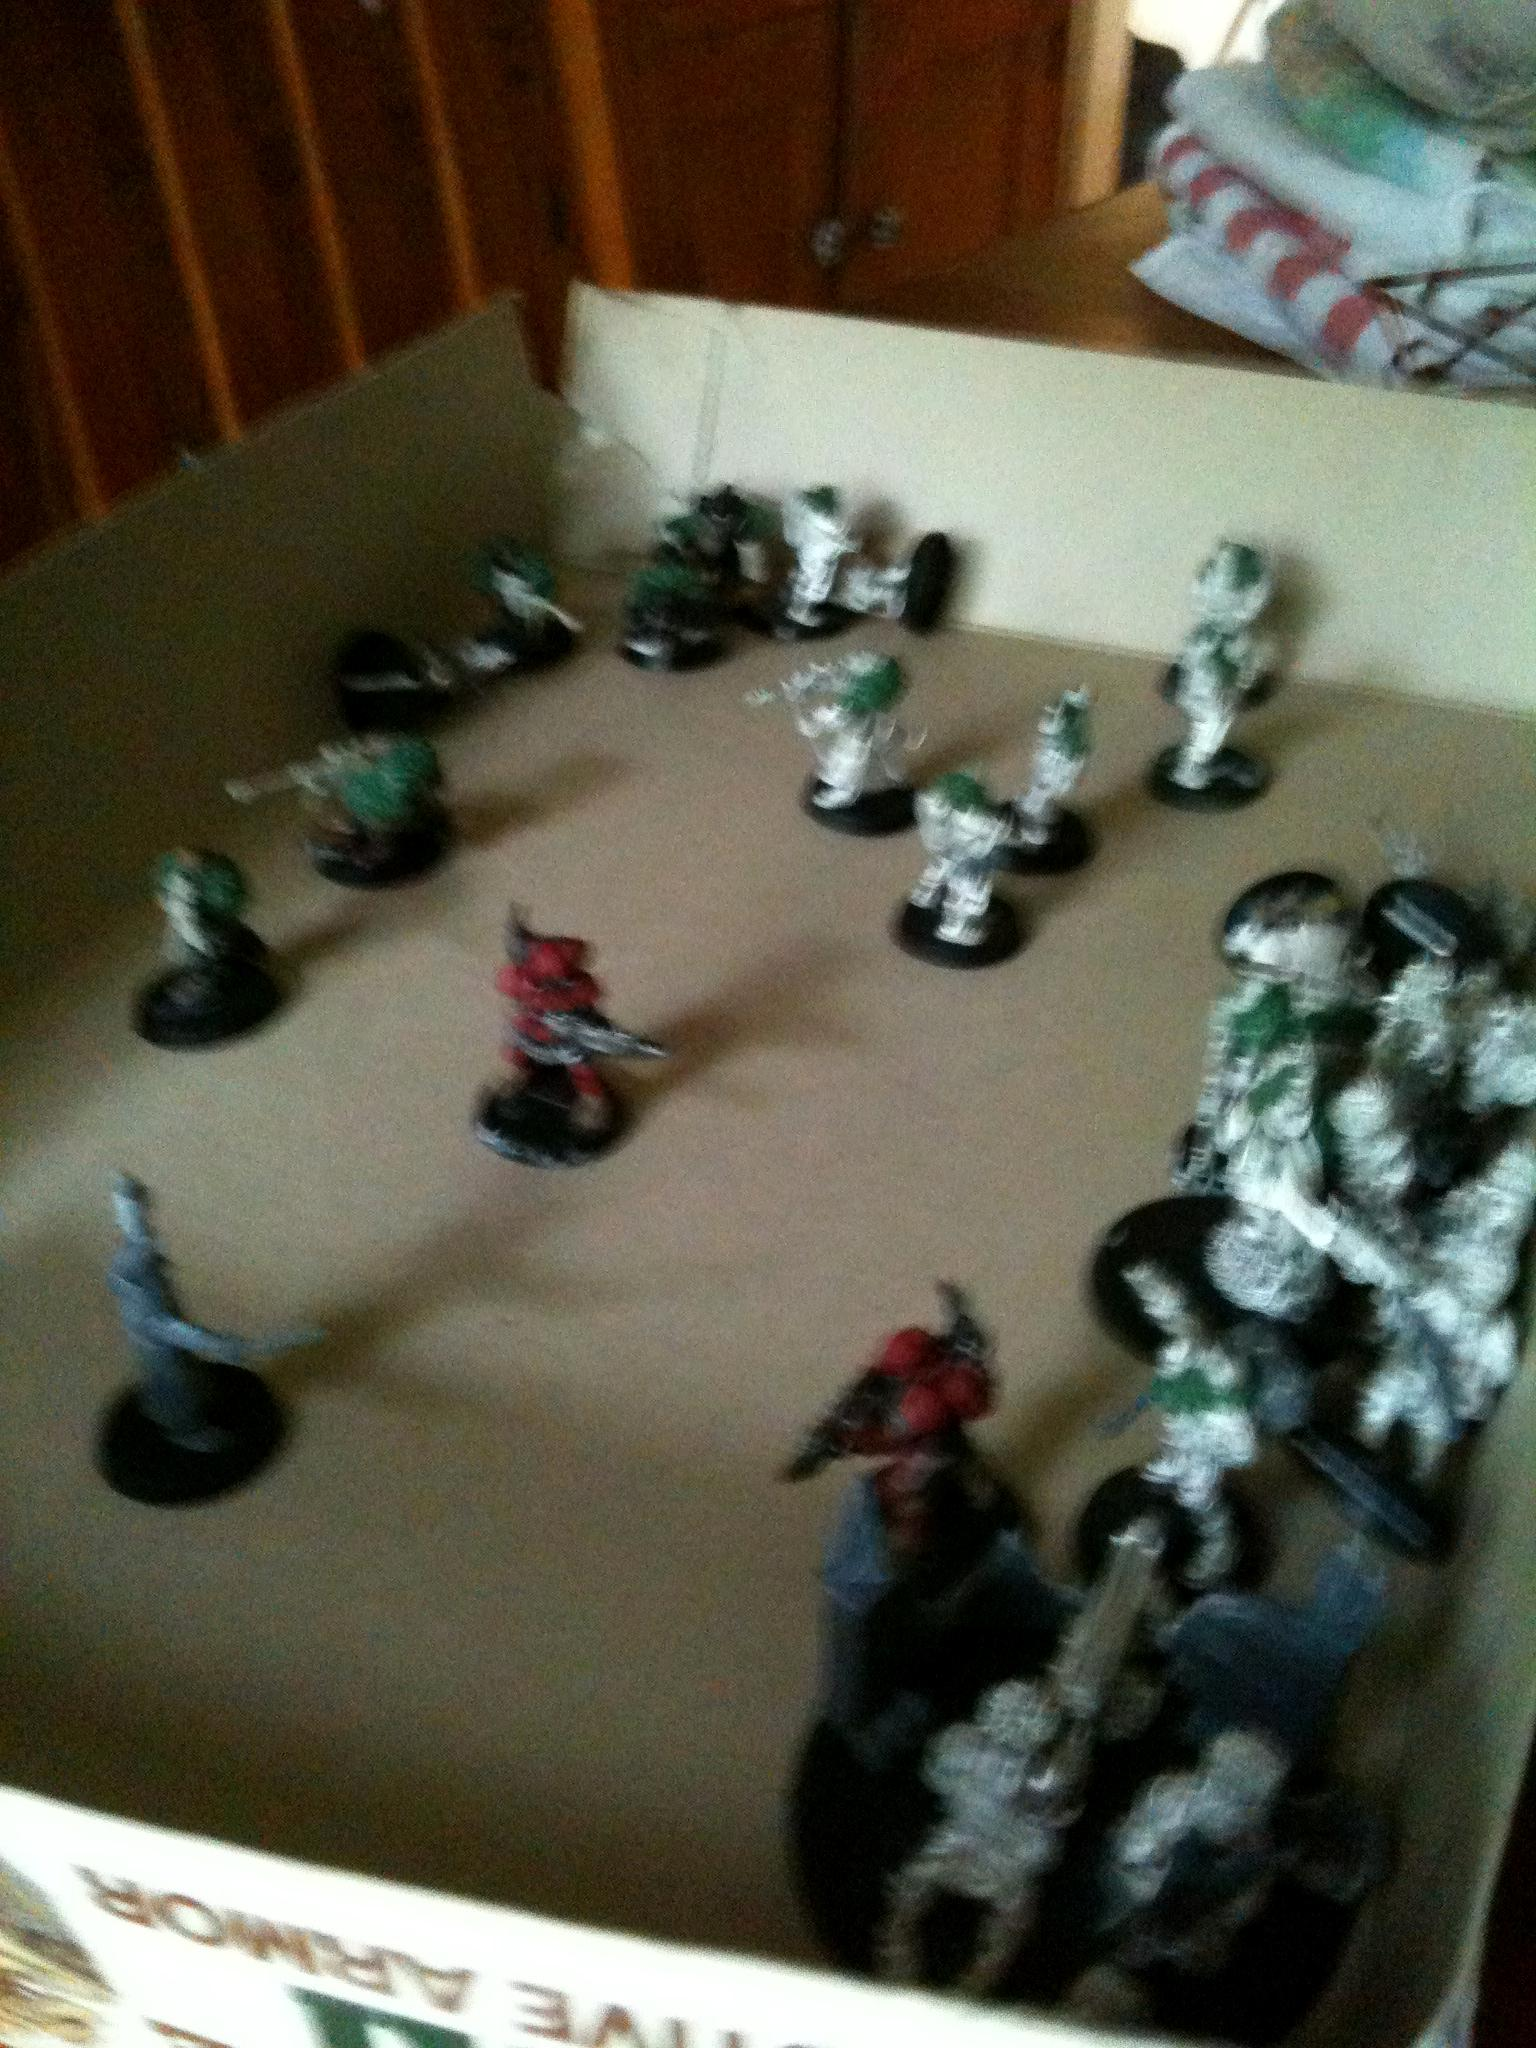 Marbo, Mechanics, Red Spray Paint, Snipers, Vostroyans